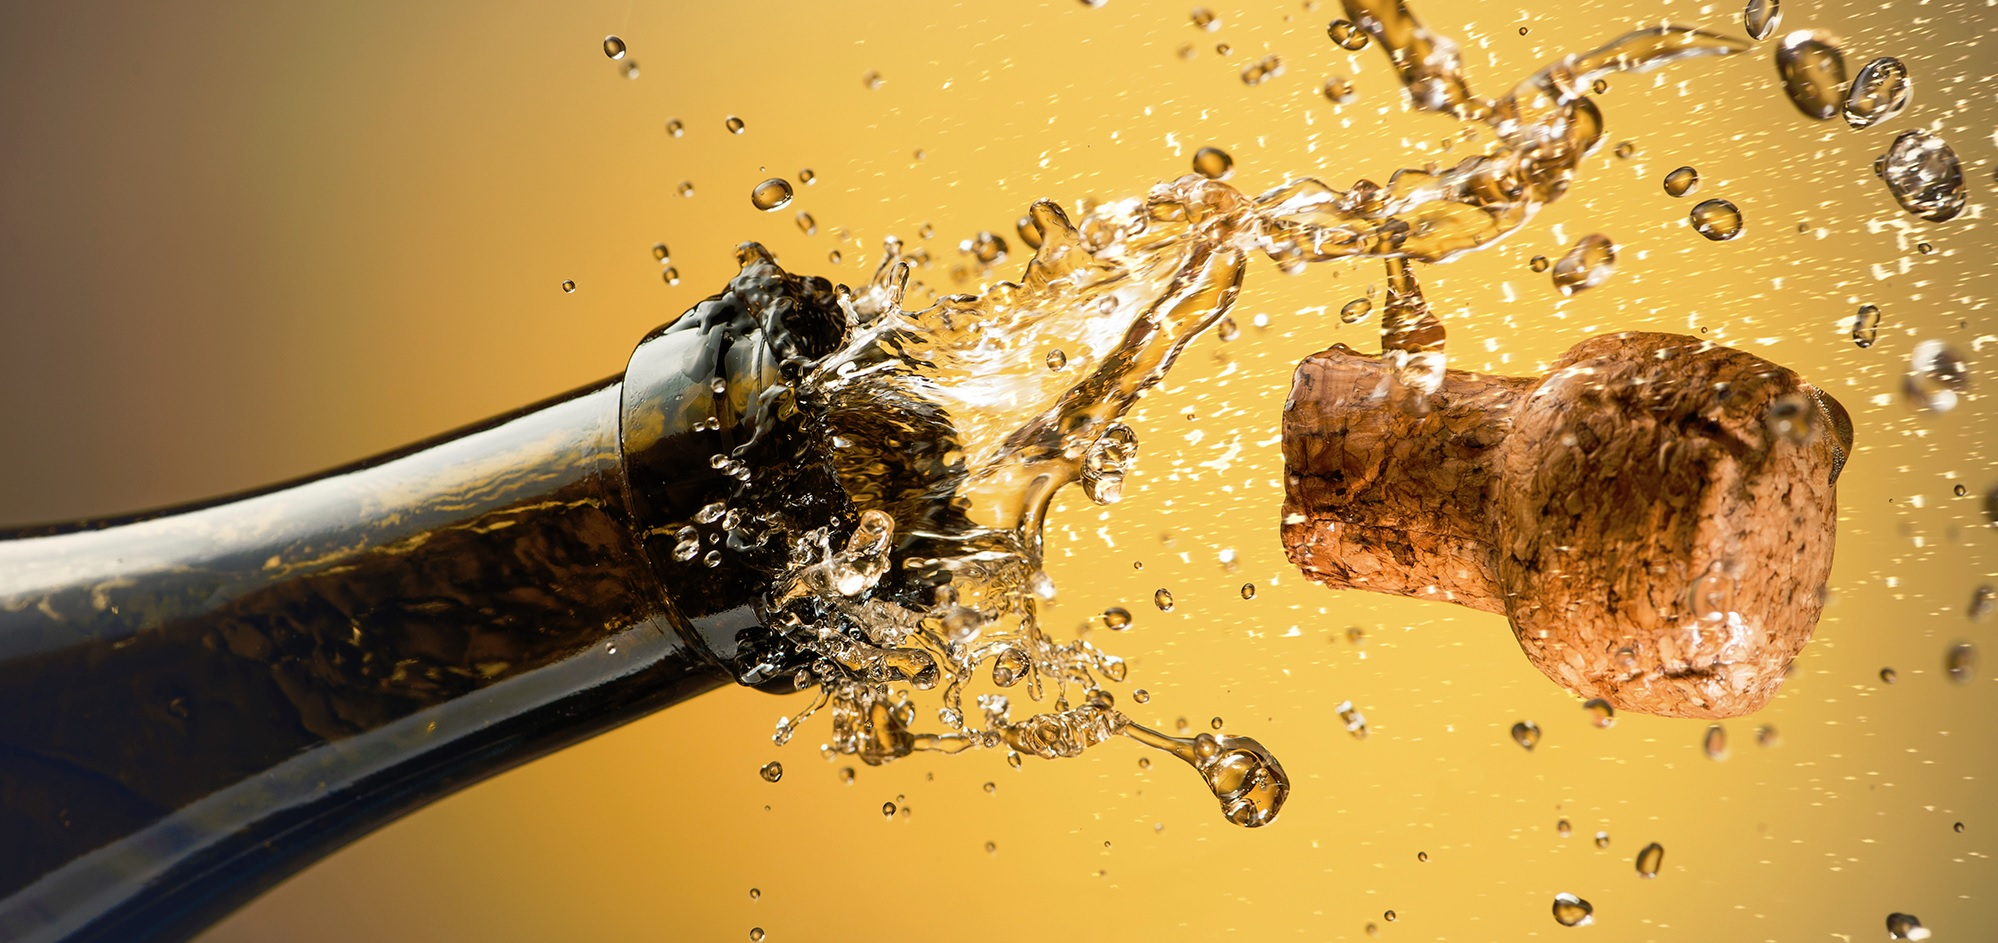 Celebrate WSET Study Awards with the West of England Wine School